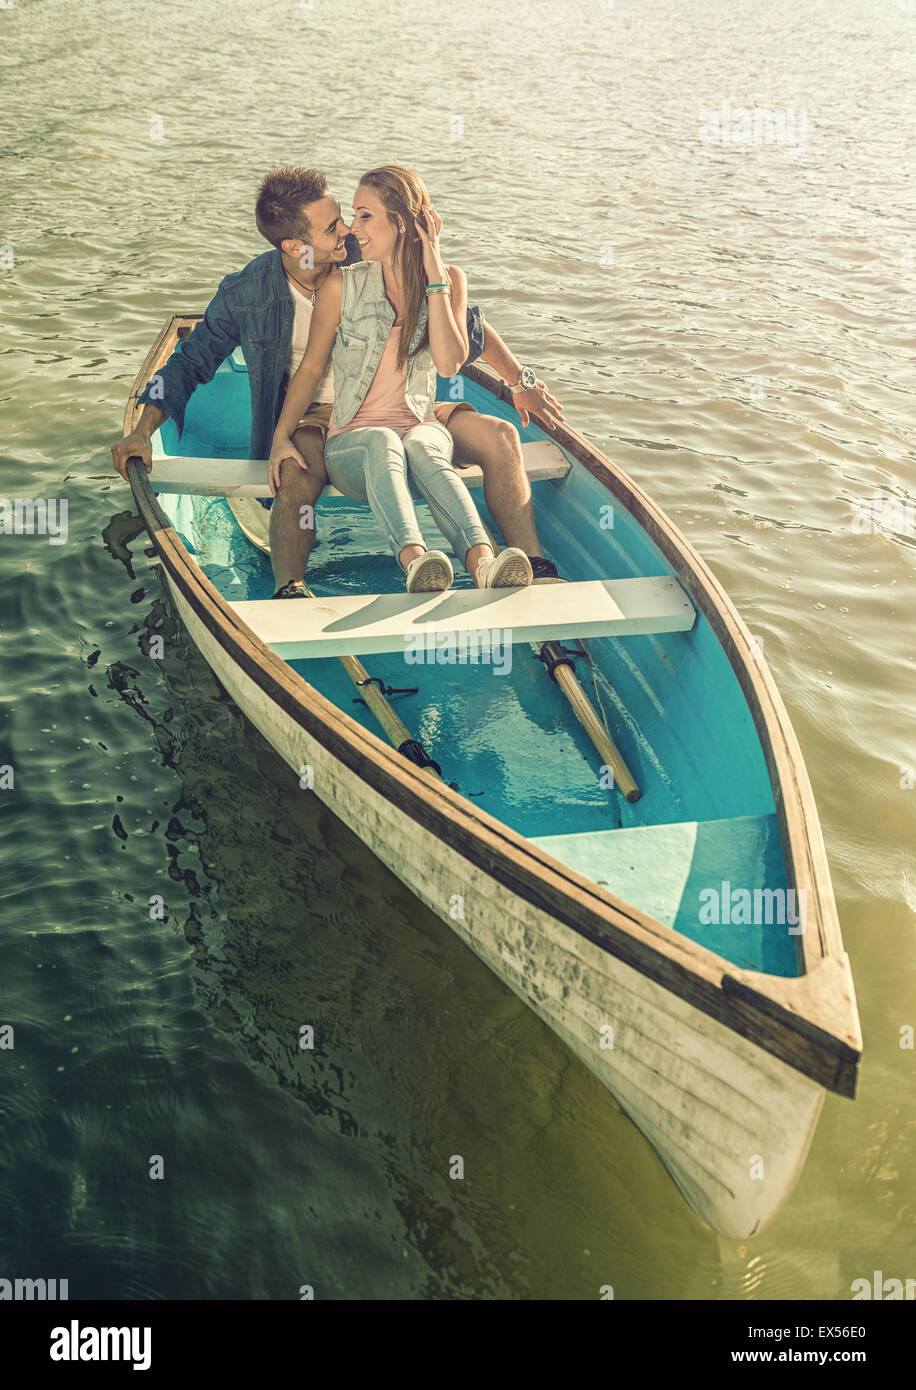 Couple in love on the boat - kissing - Stock Image